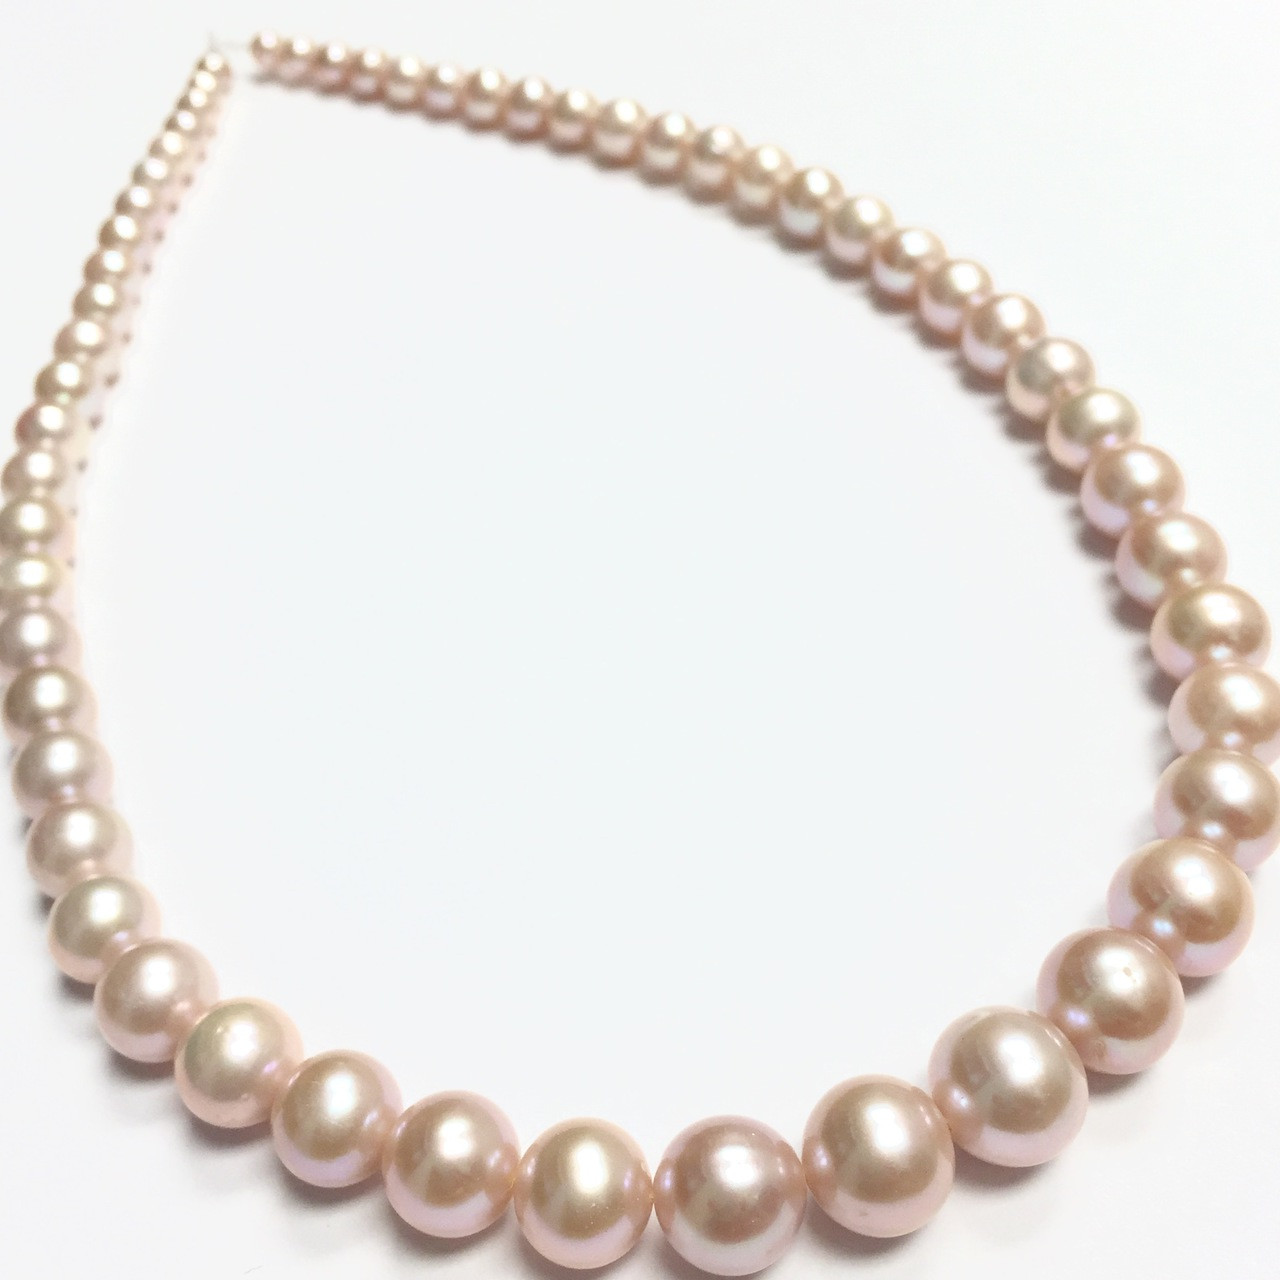 7f46e4eca Freshwater Pearl Culture | Pink Pearls Necklace | Graduated Pearl ...